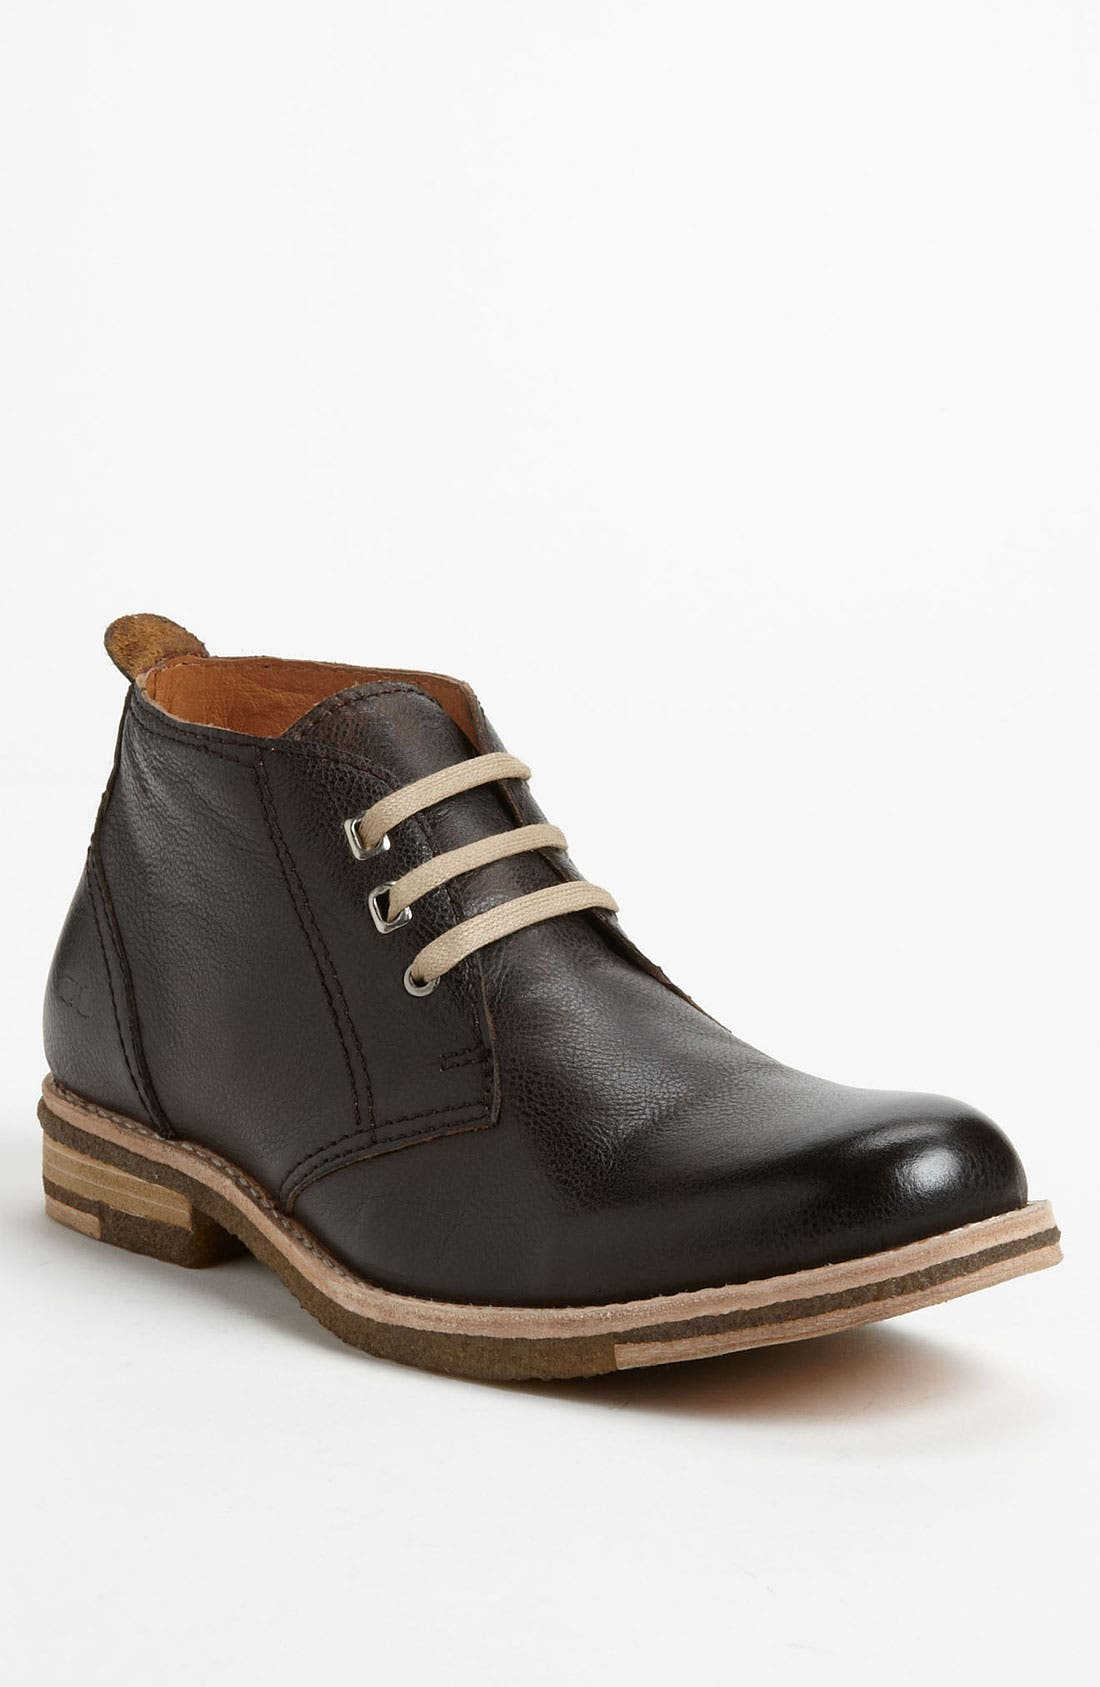 Main Image - Bed Stu 'Lucious' Chukka Boot (Online Only)